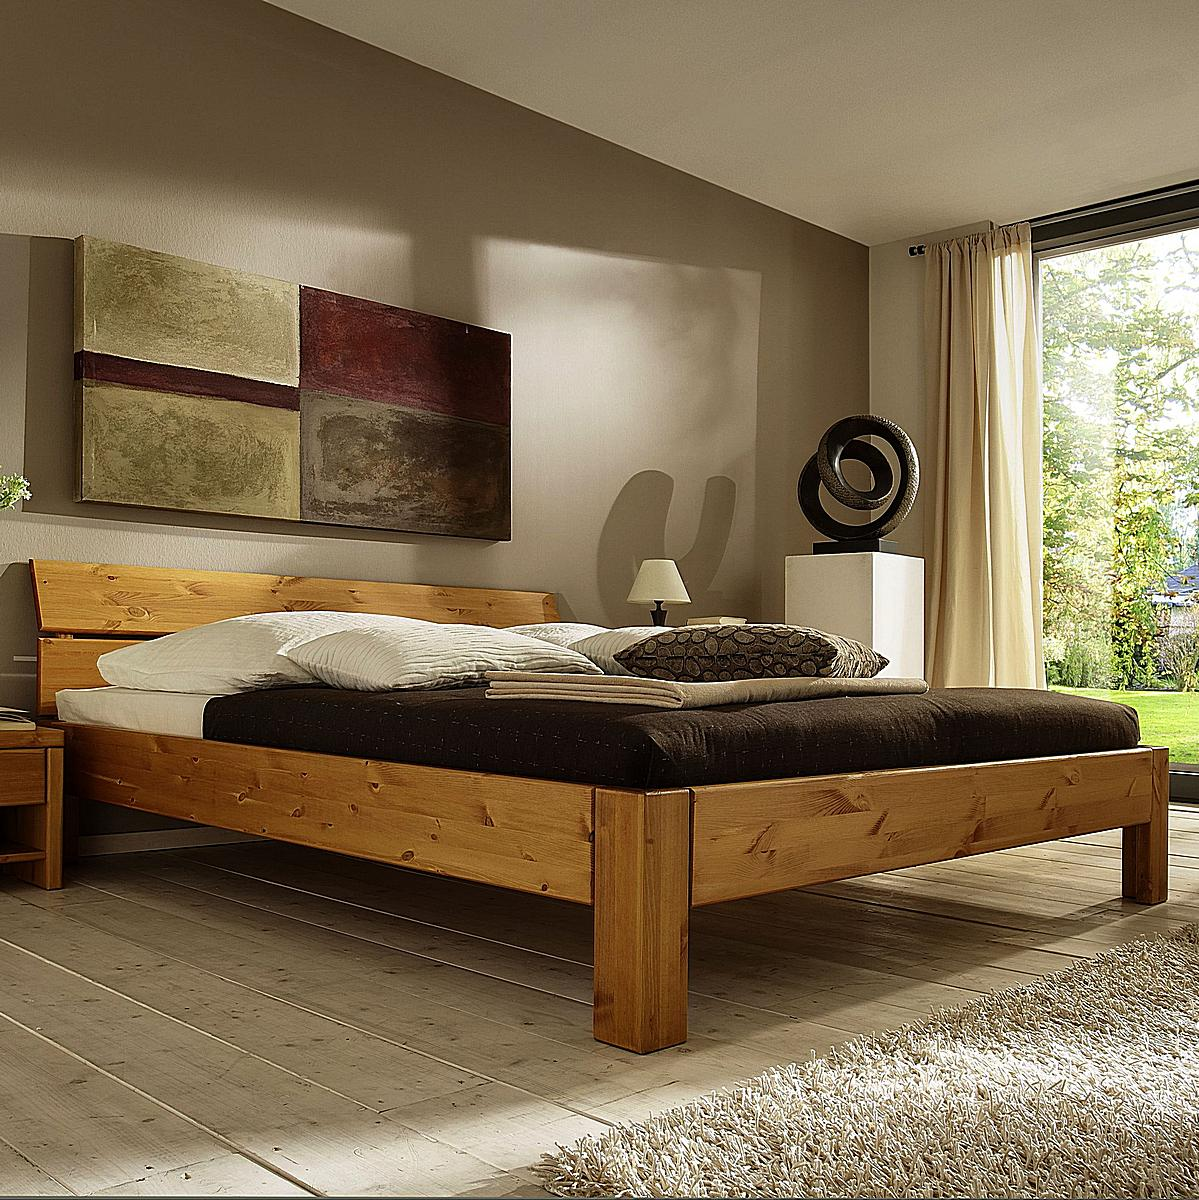 bett honig kirsch 160x200 kiefer massiv xl easy sleep 9216 93 7. Black Bedroom Furniture Sets. Home Design Ideas